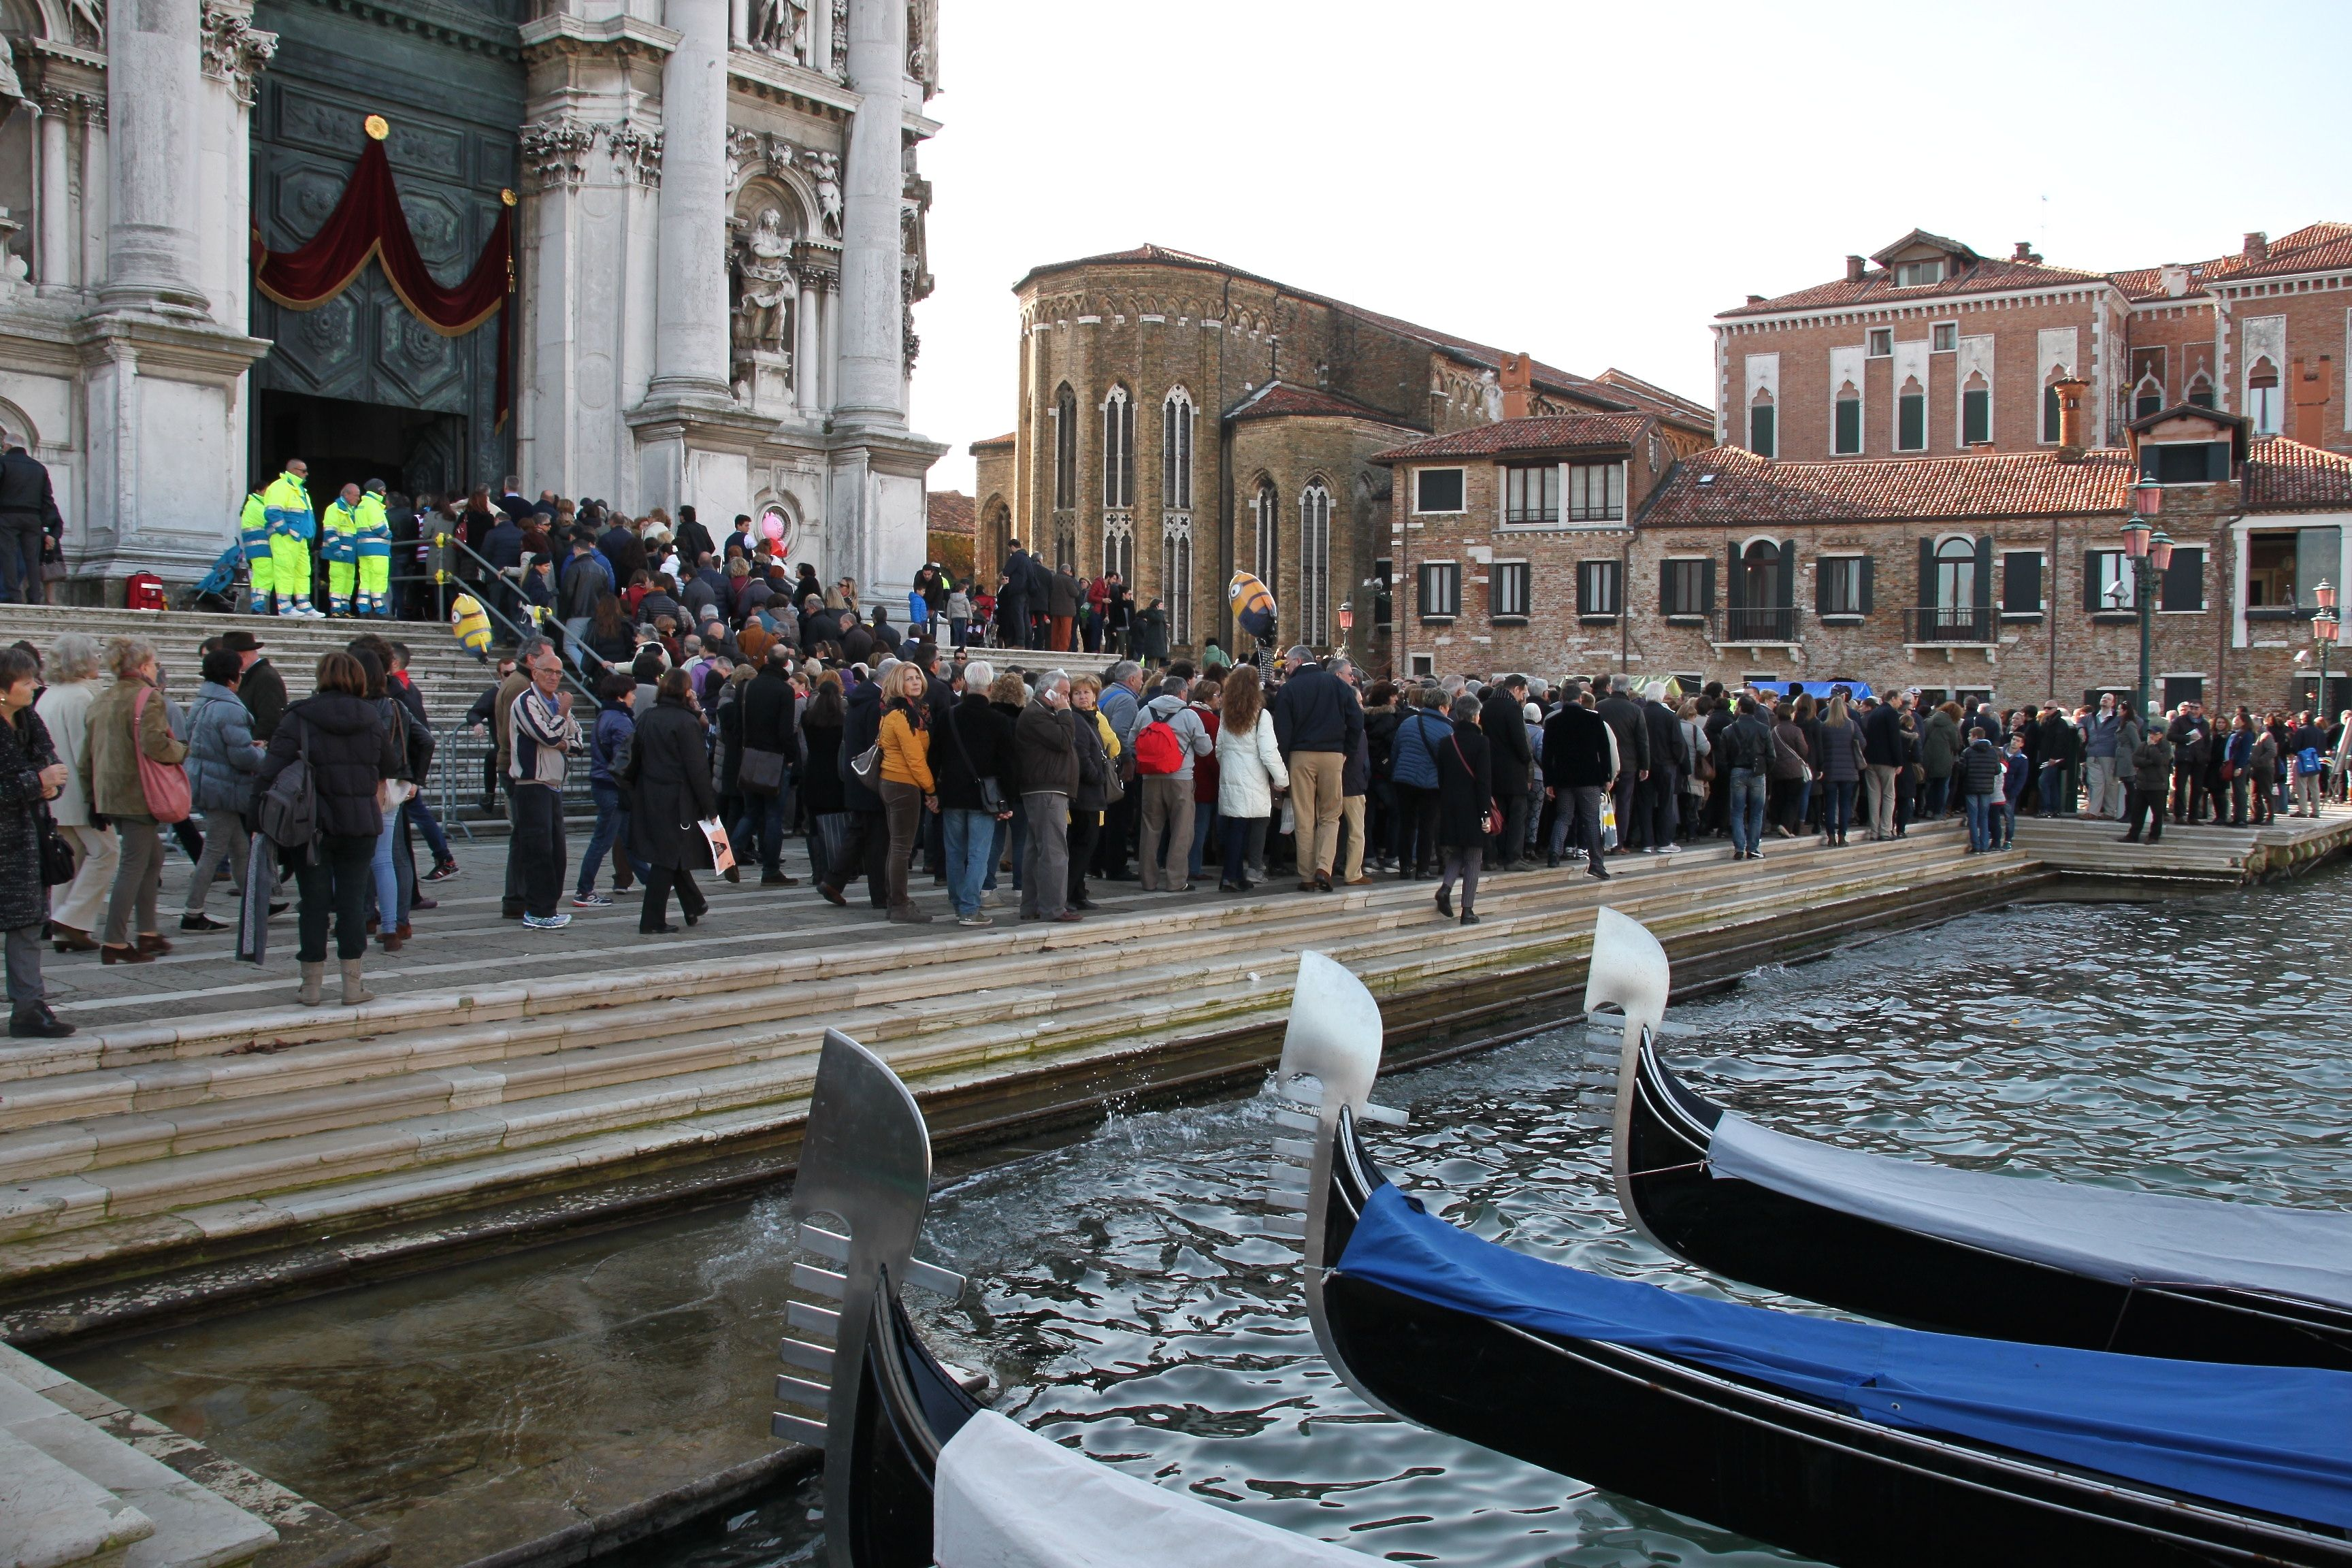 Worshippers gather on the Salute's waterfront before entering the church